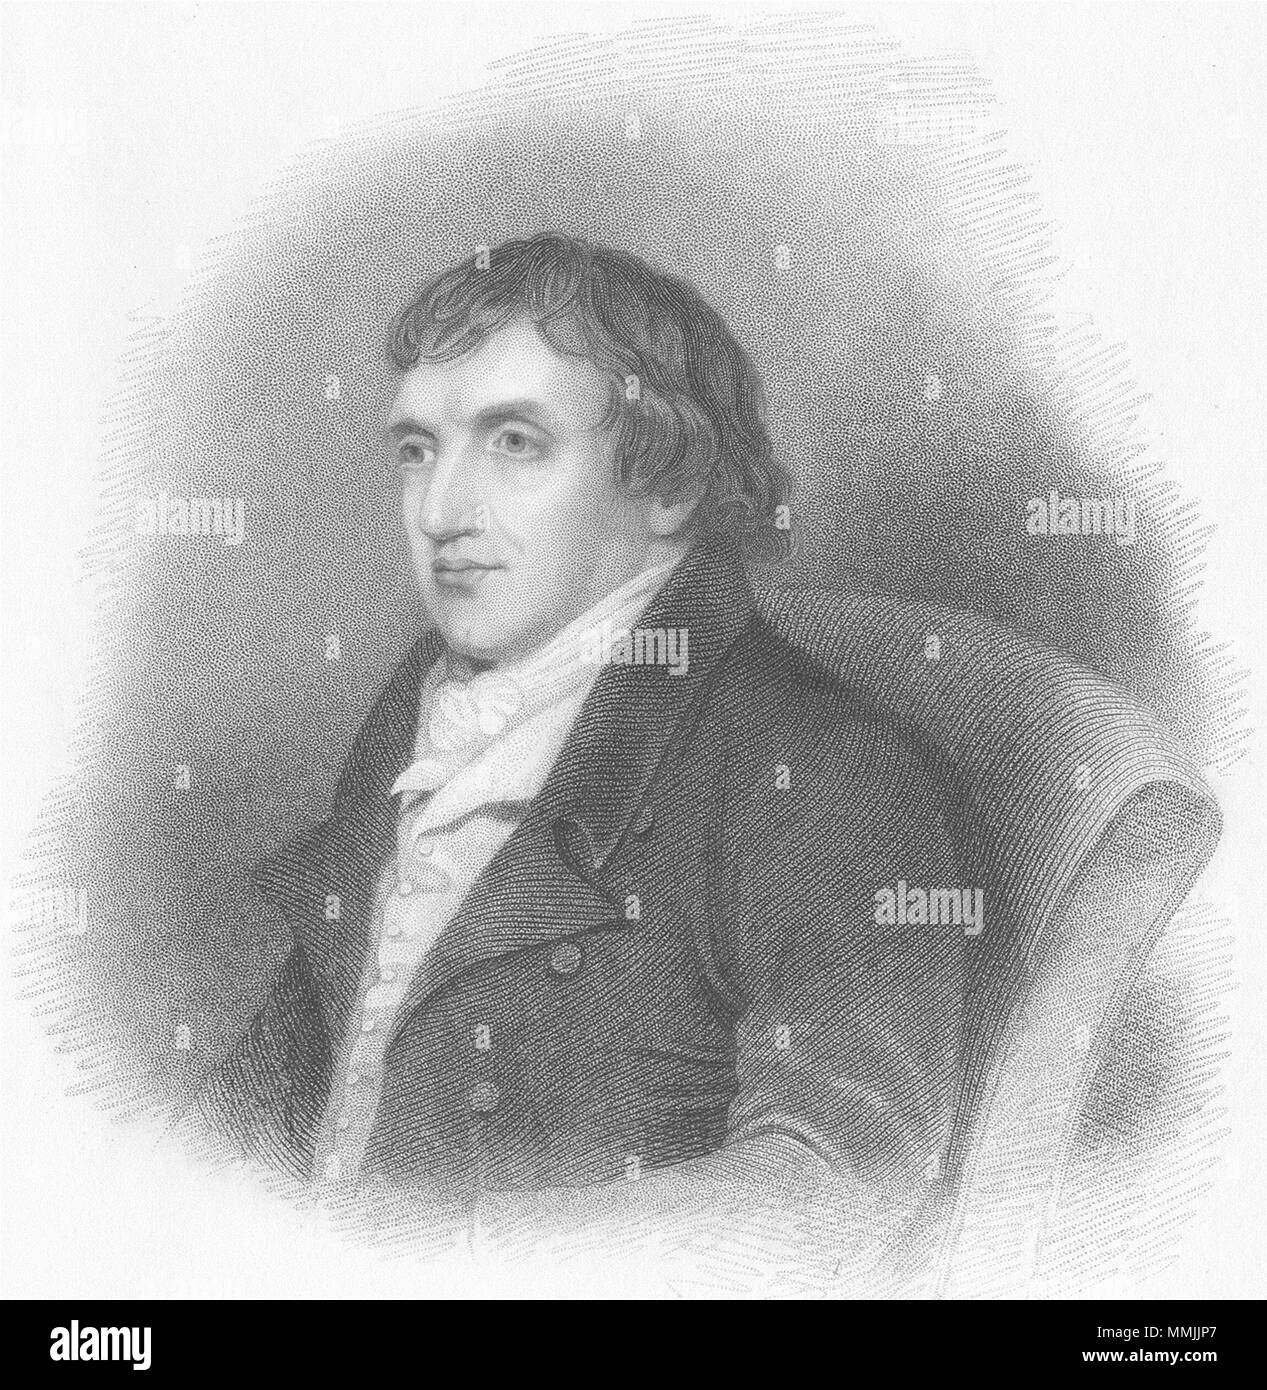 PORTRAITS. Possession of Murray-Finden 1833 old antique vintage print picture - Stock Image